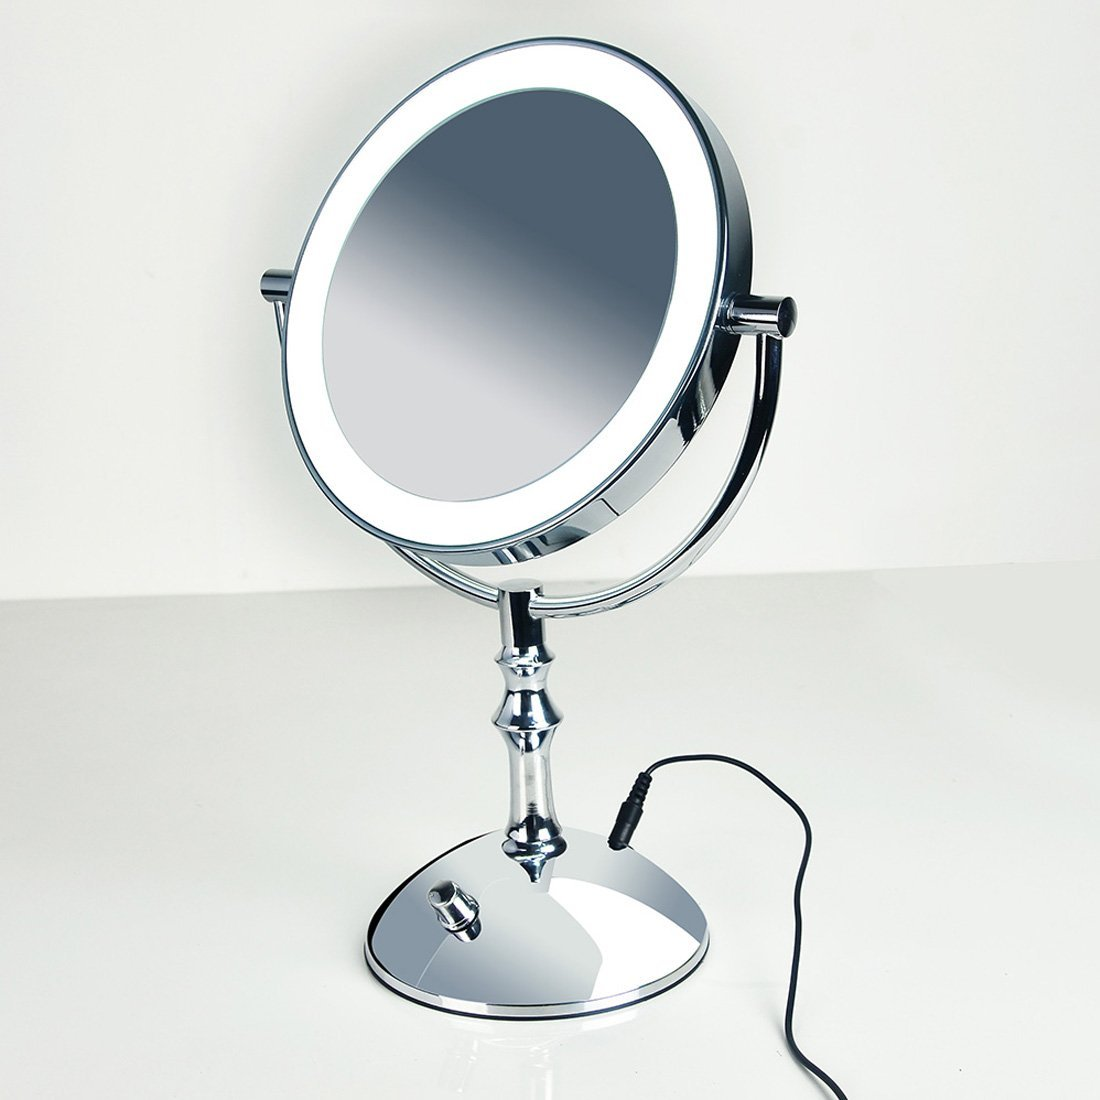 MR16008 Ltd Moiom 8 Inch Double Sided 1X//10X Magnification LED Lighted Makeup Mirror,Brightness Adjustable,Polished Chrome Finish,With USB line Yiwu ZongRui Ecommerce Co